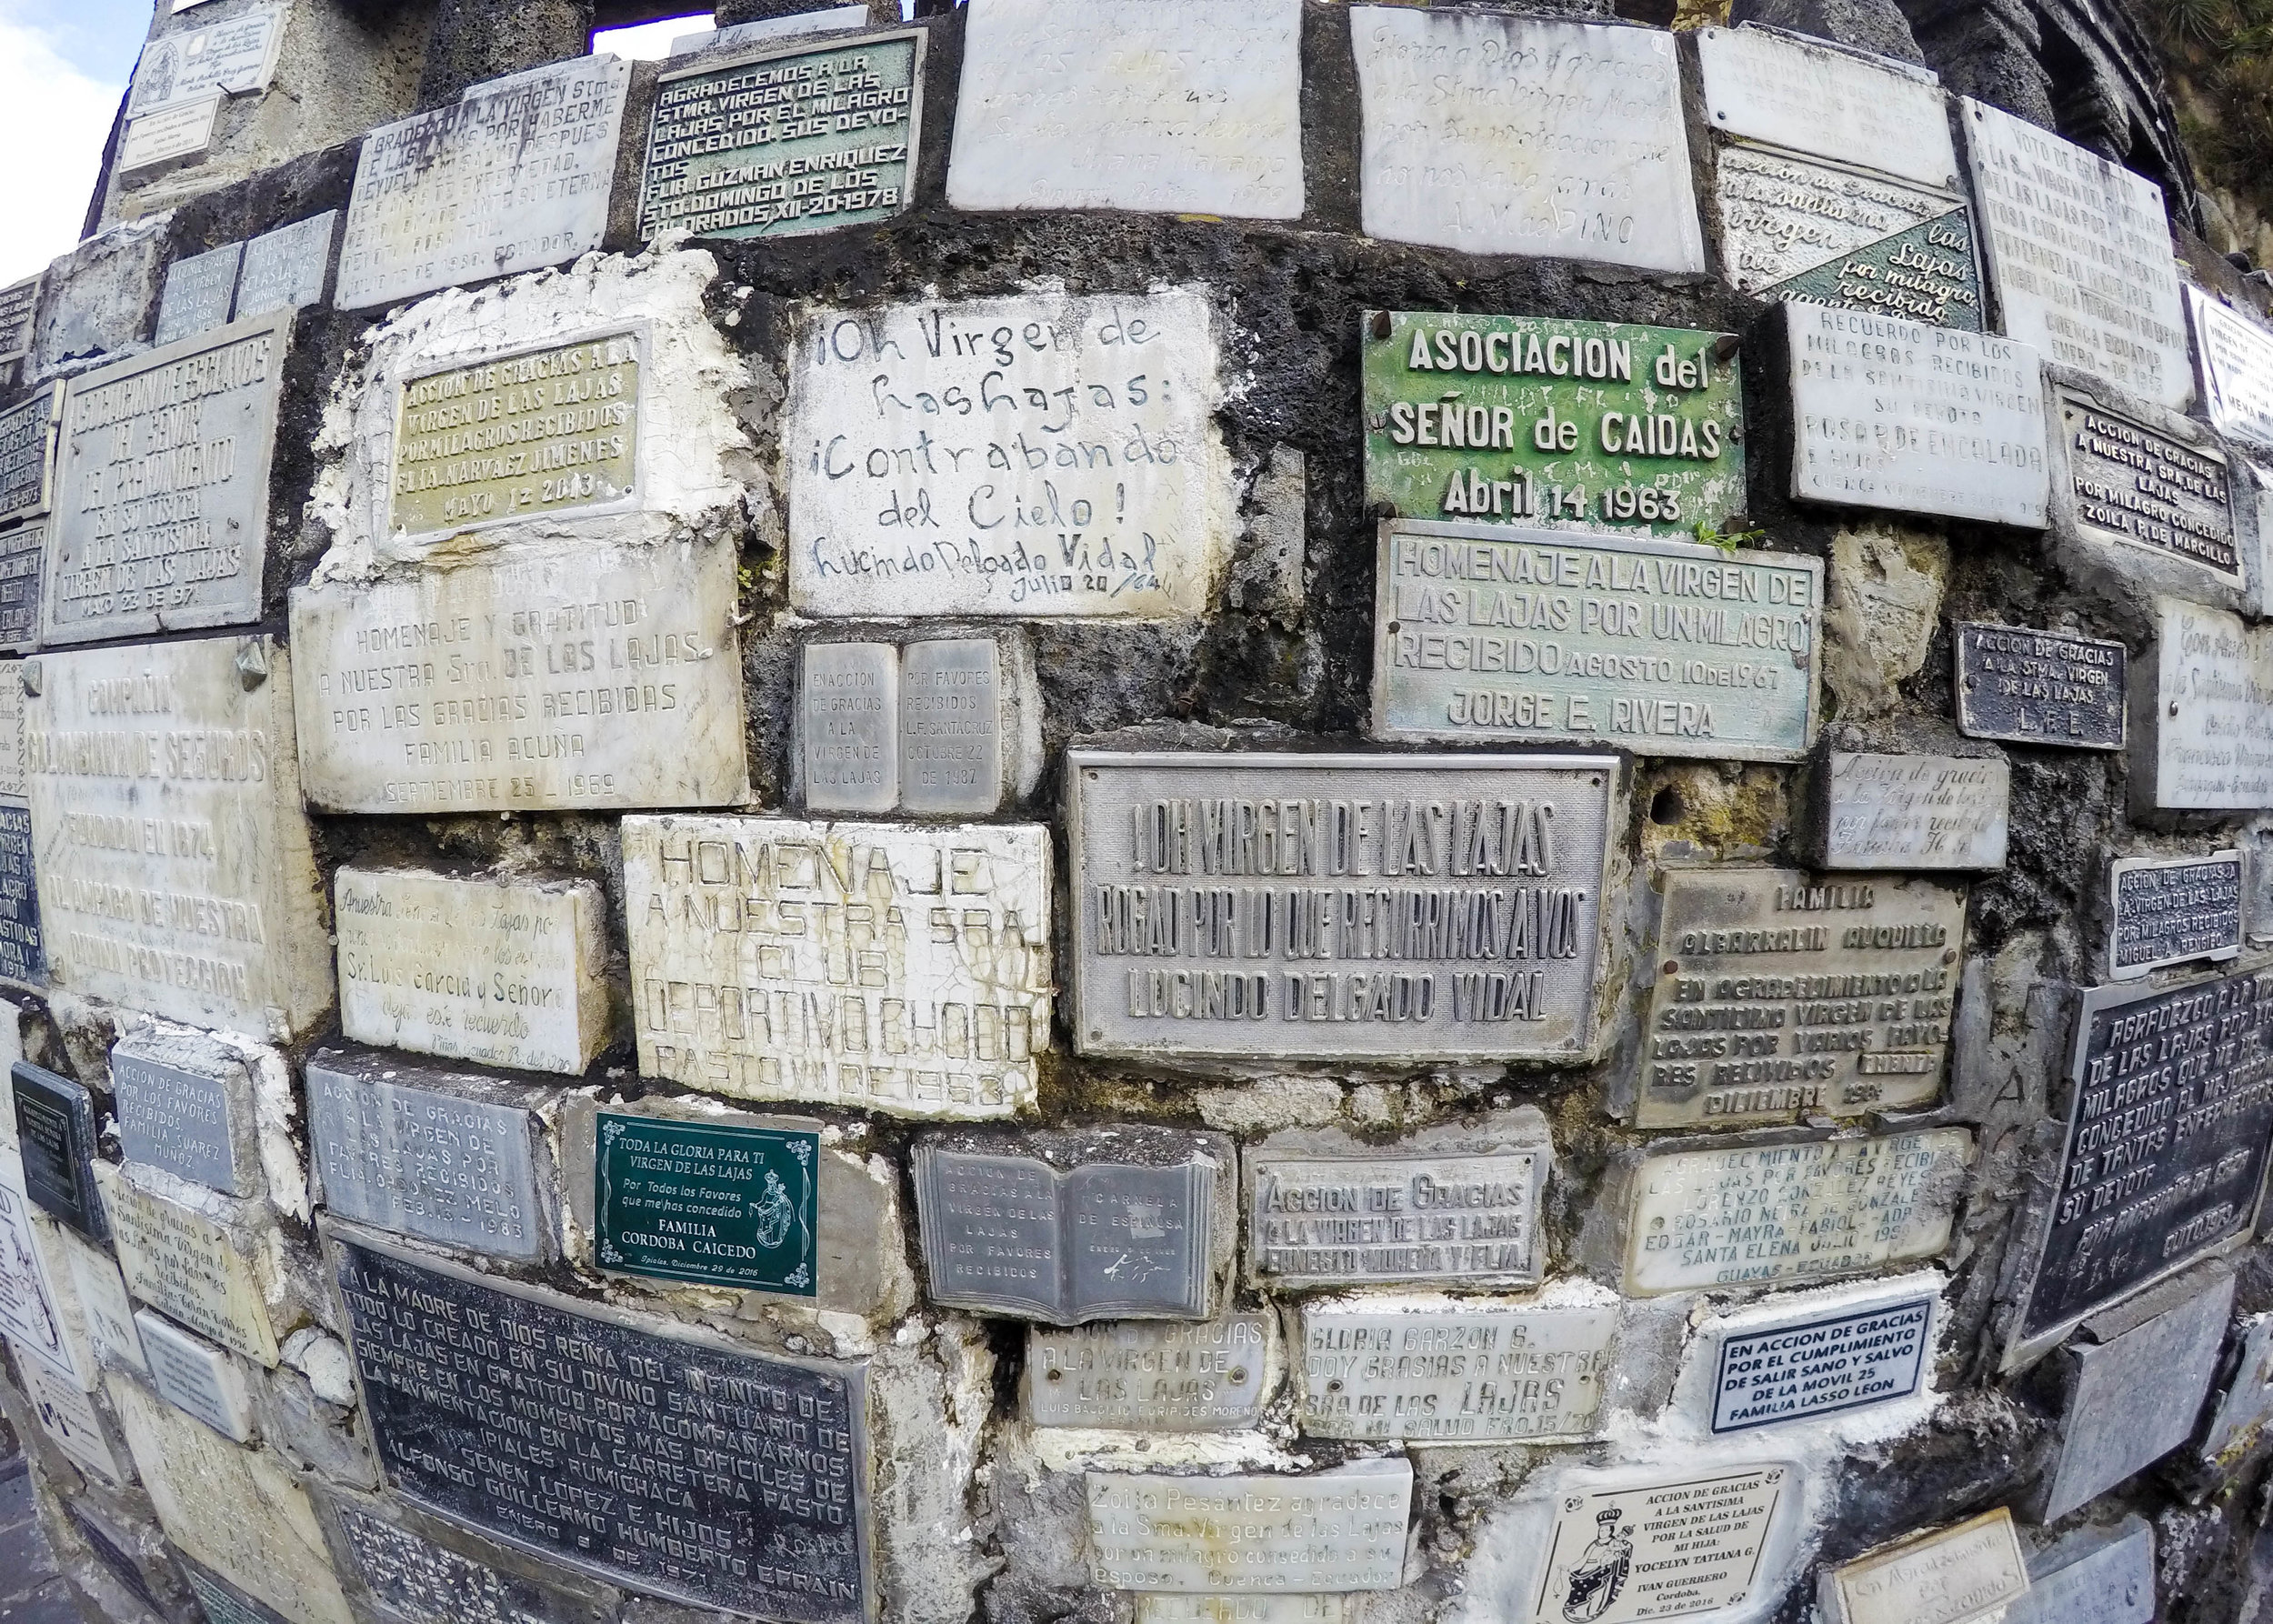 Memoriam Plaques at Las Lajas, Colombia